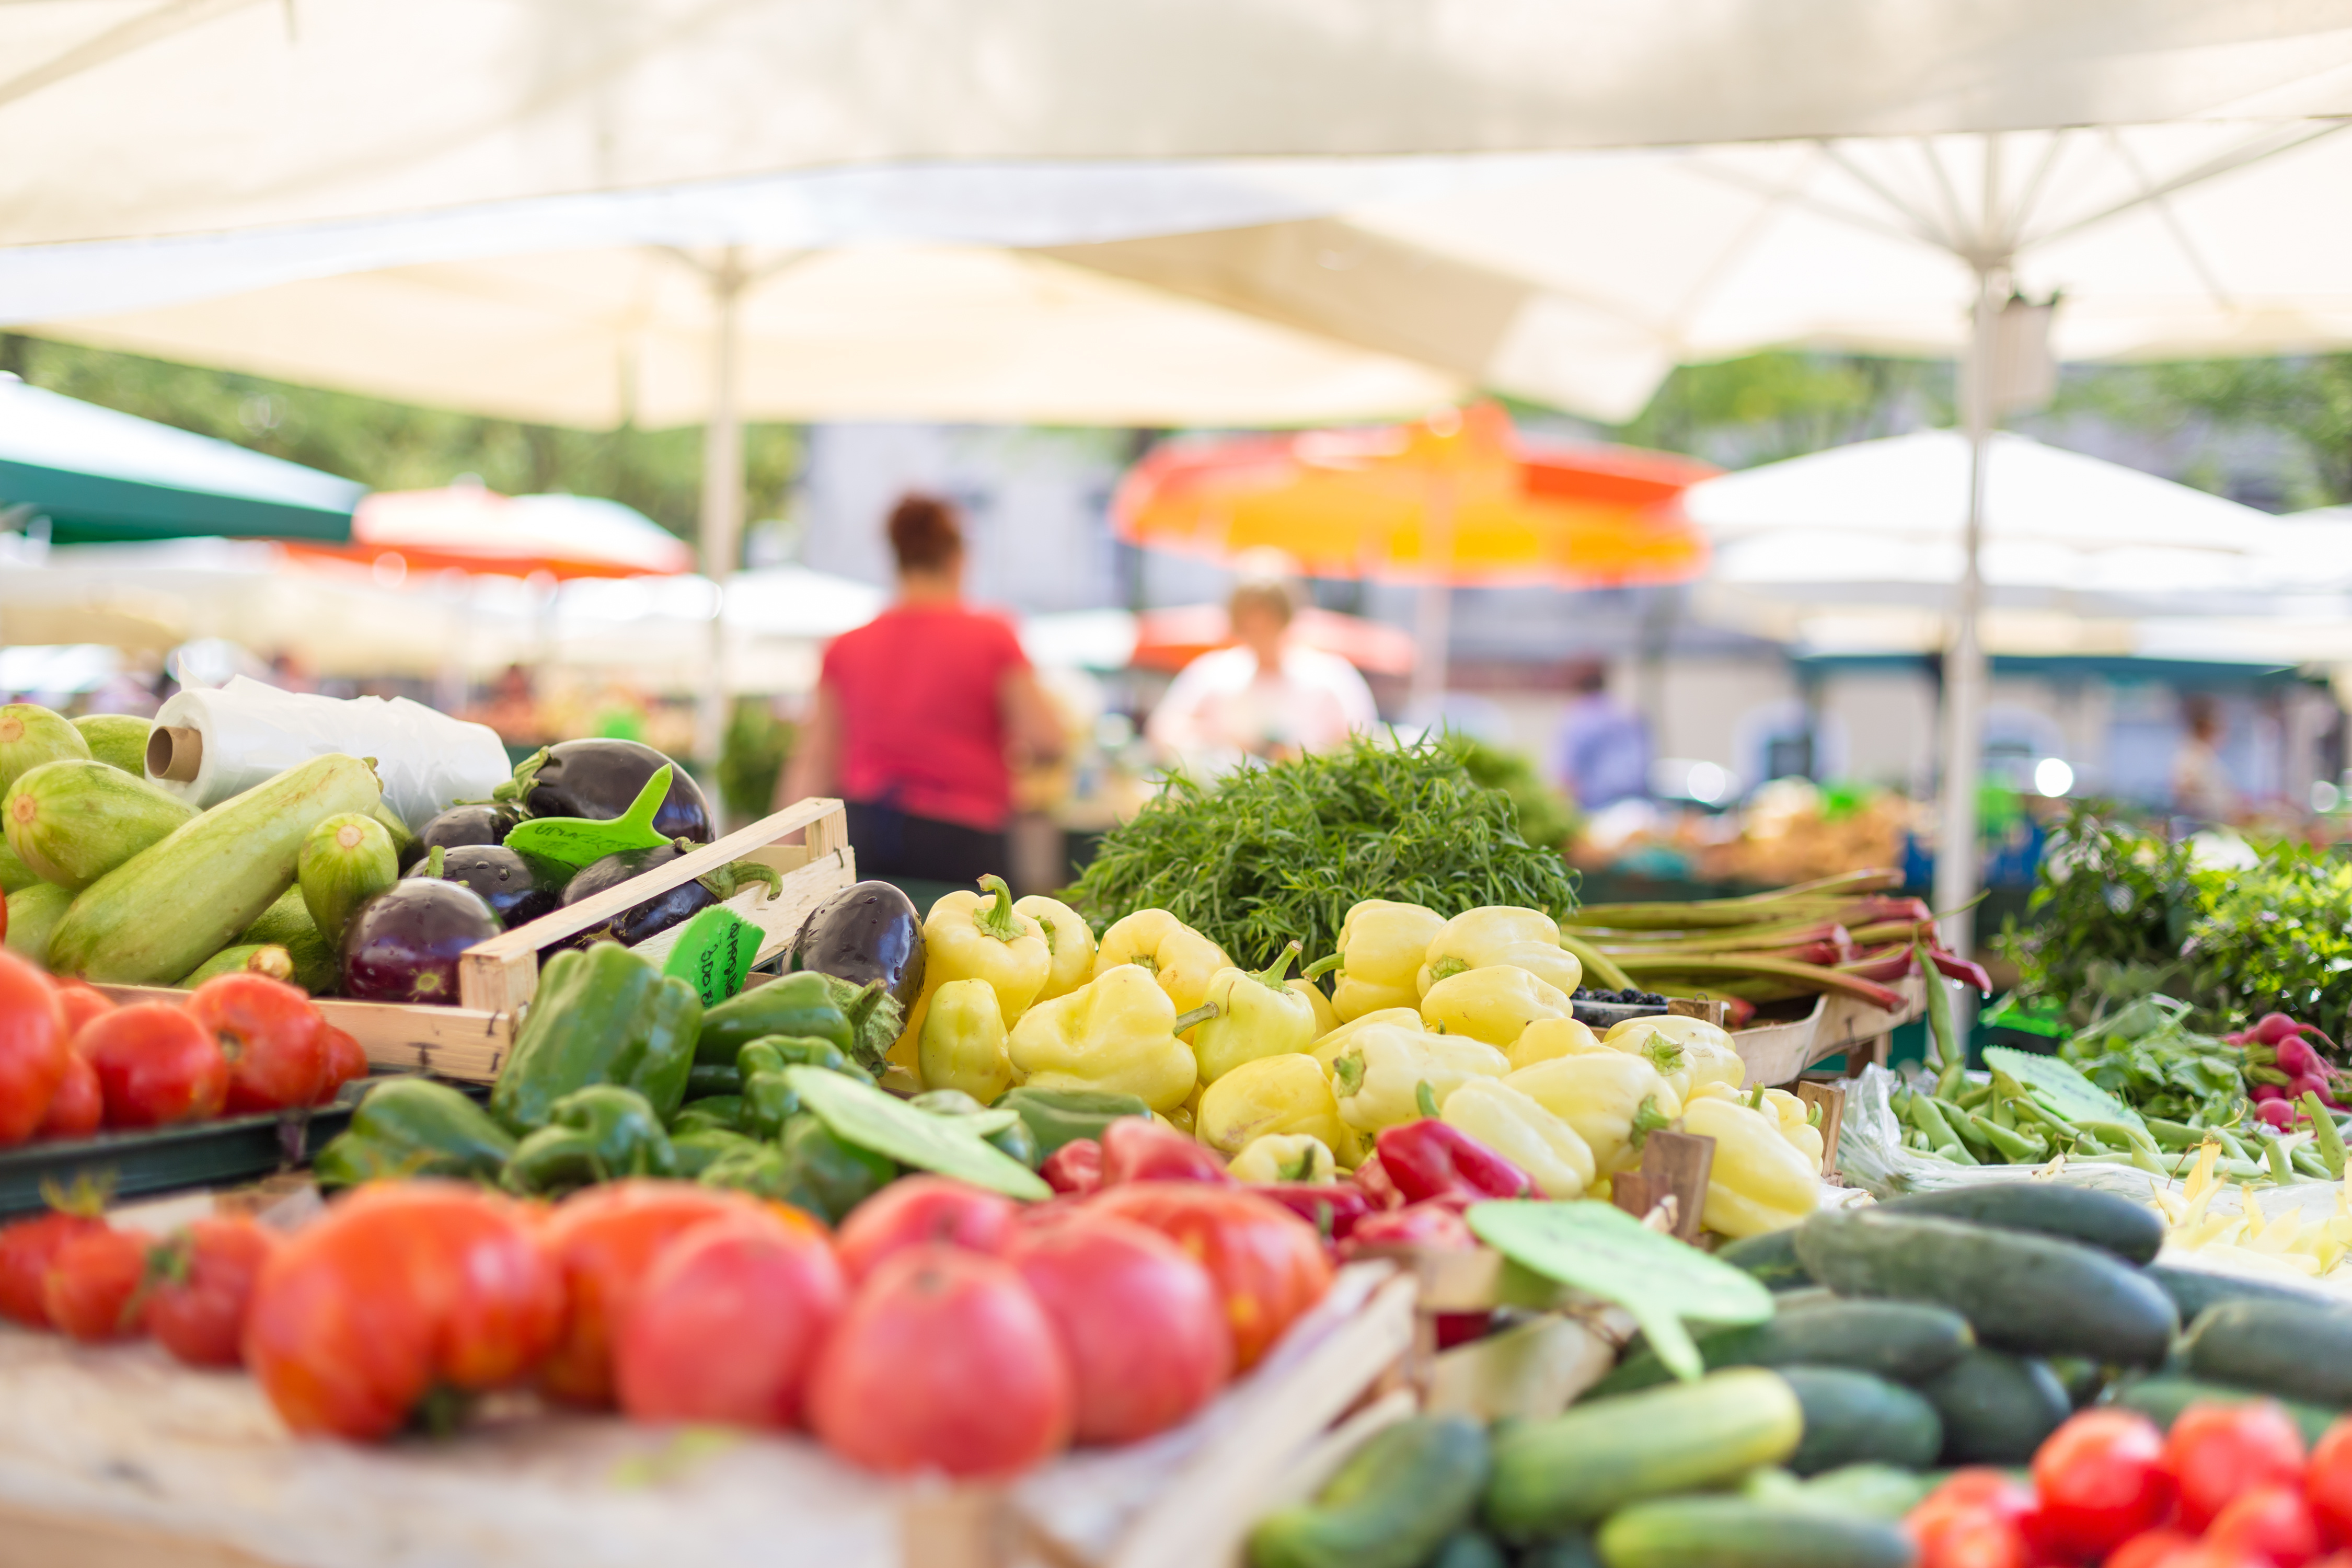 Consumers shopping for produce are increasingly concerned about the safety of their food.